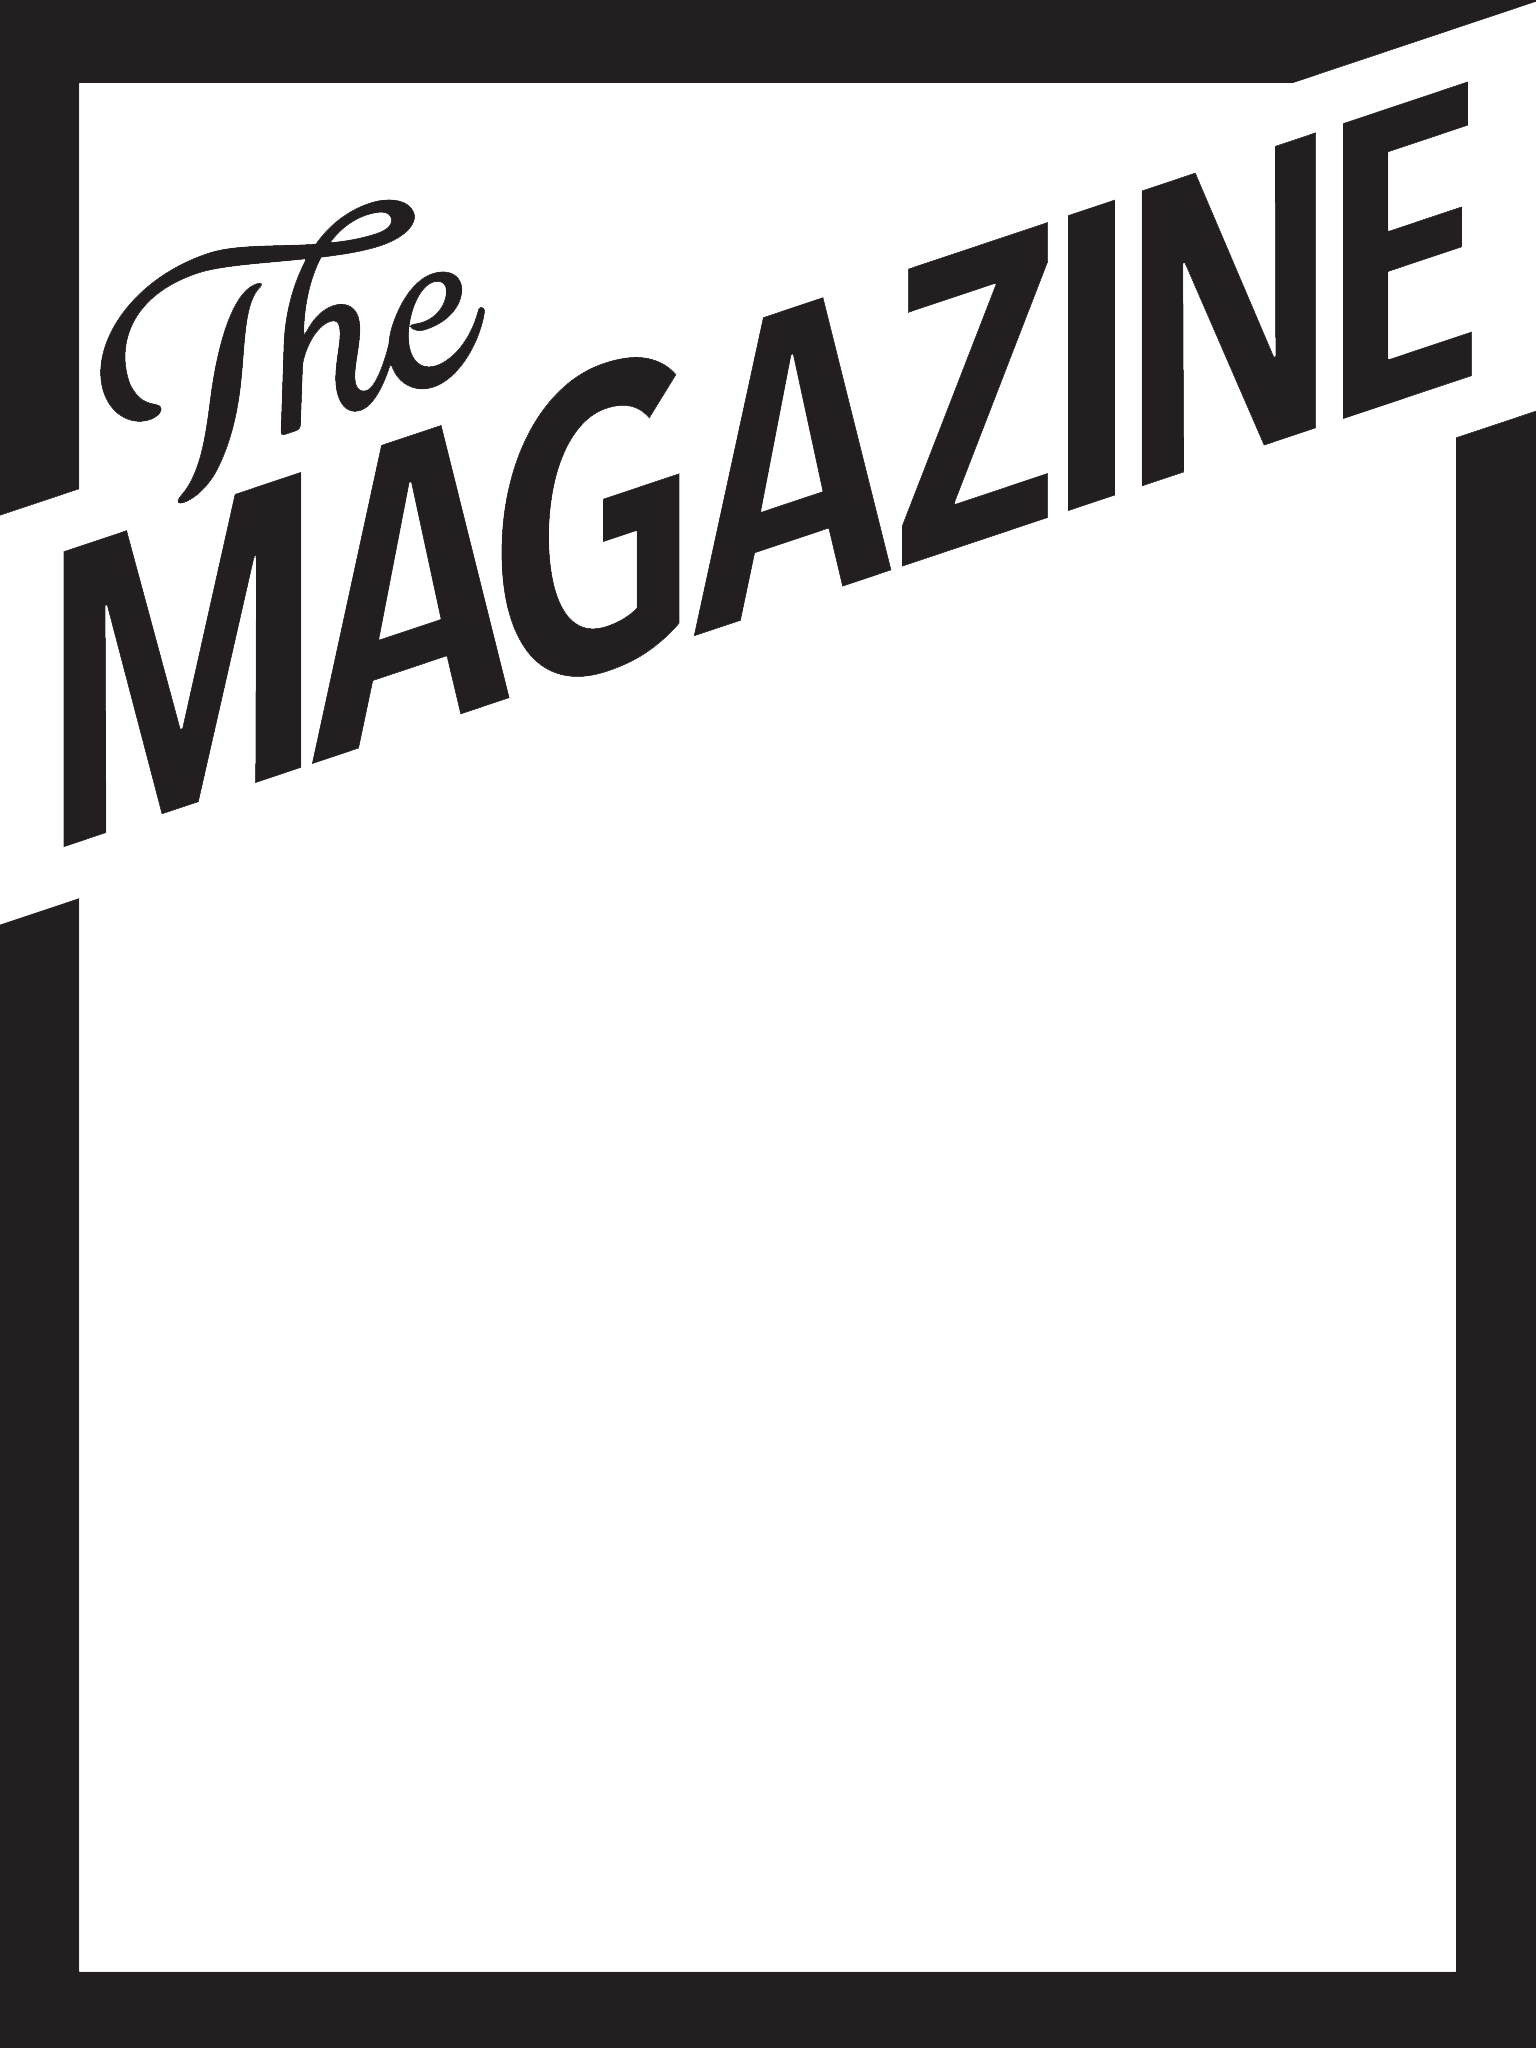 Magazine cover templates . Vector magazines blank image transparent download